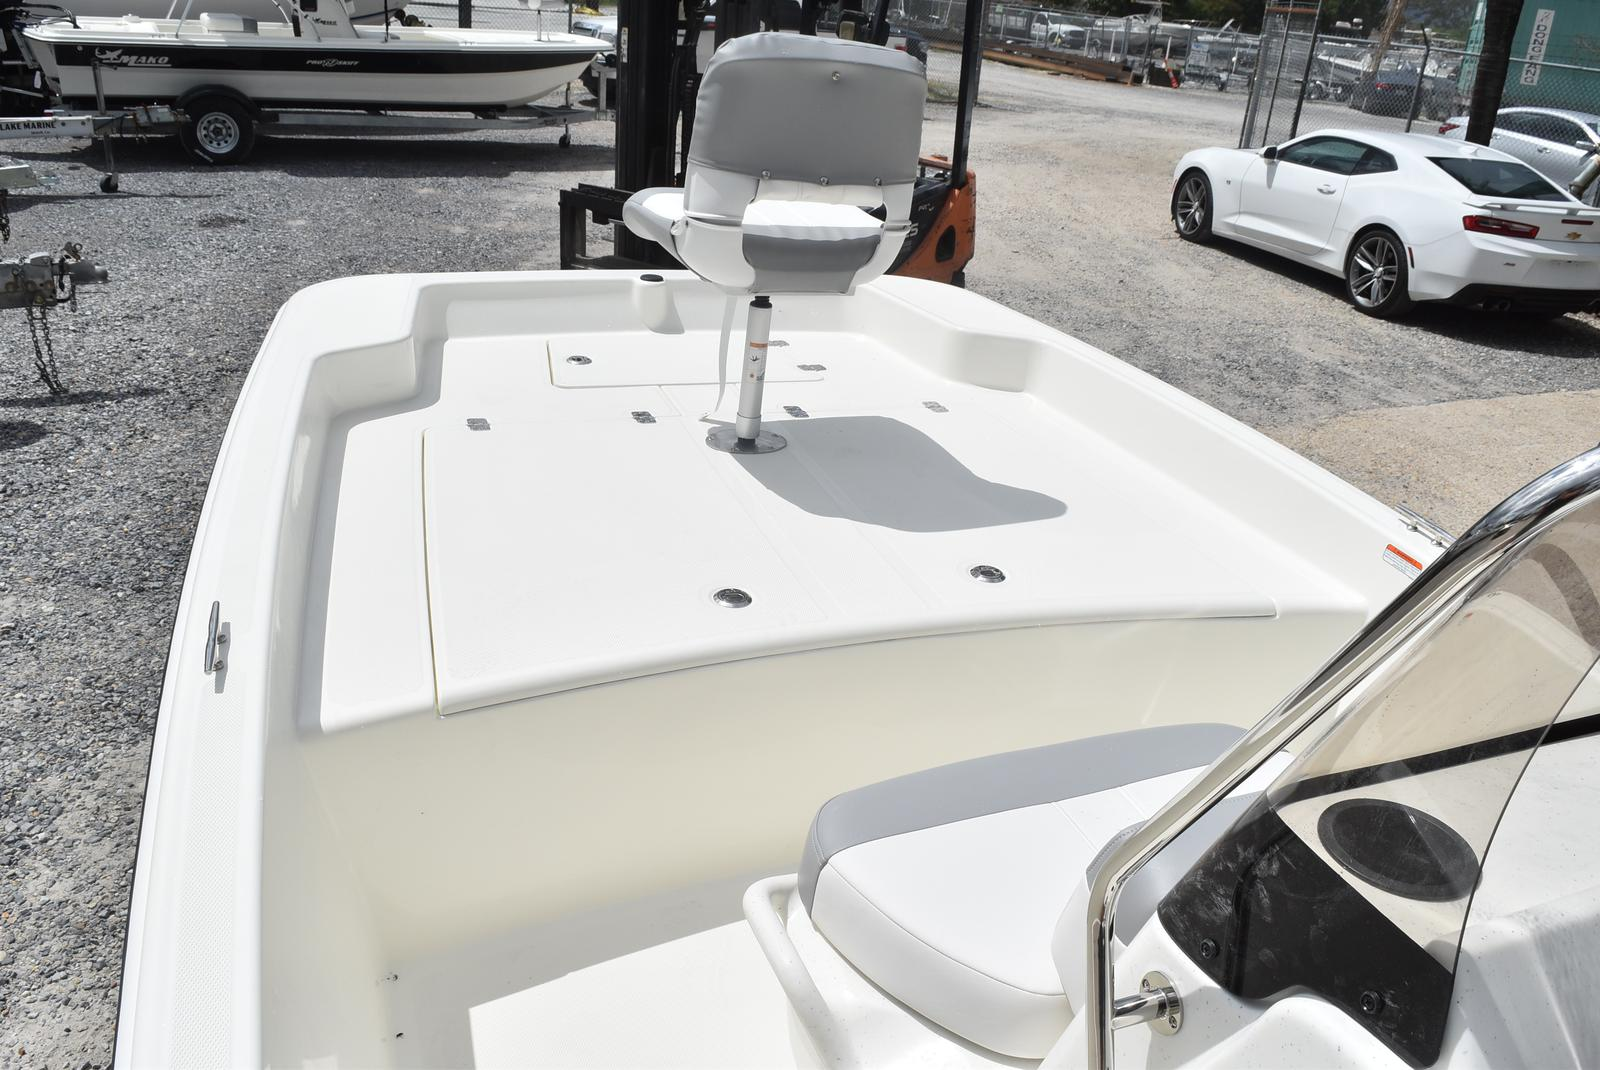 2020 Mako boat for sale, model of the boat is Pro Skiff 17, 75 ELPT & Image # 393 of 702